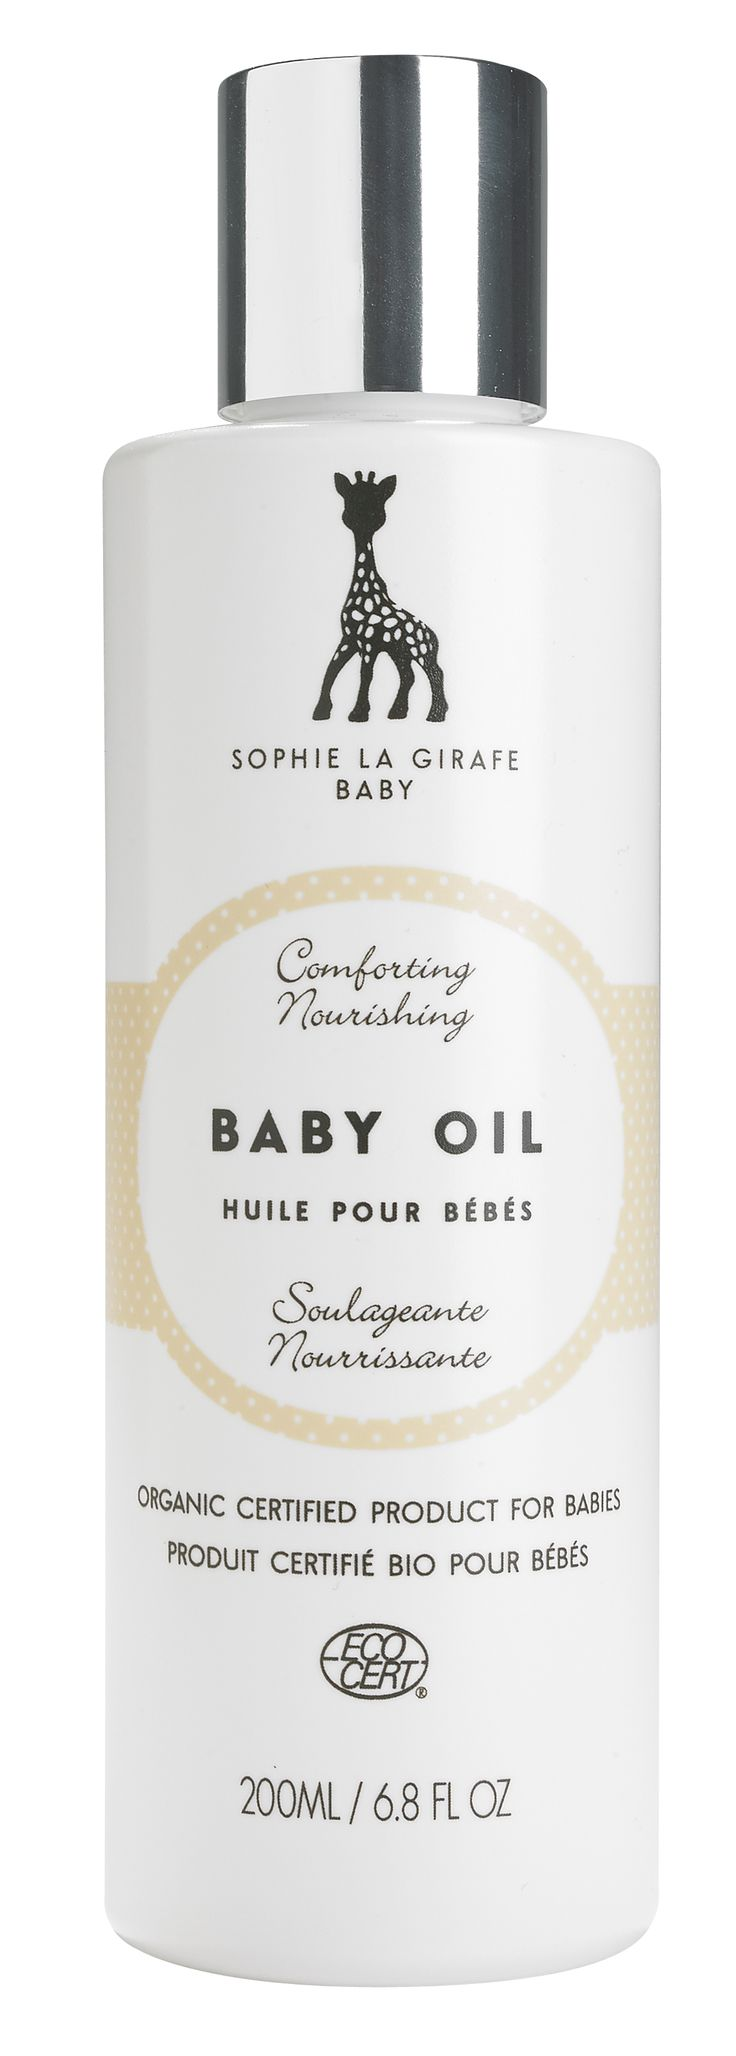 Multi-usage awarded baby oil.   Gentle, Ecocert-certified formula.   Use in baby bath, moisturizing, massaging. As eye makeup remover. For shaving... You name it!   Ideal also as healing scalp treatment: massage well, leave for night, and rinse with Sophie la girafe Baby Hair & Body Wash. Continue washing with same shampoo to maintain results and get rid of ie. dandruff with no nasties.